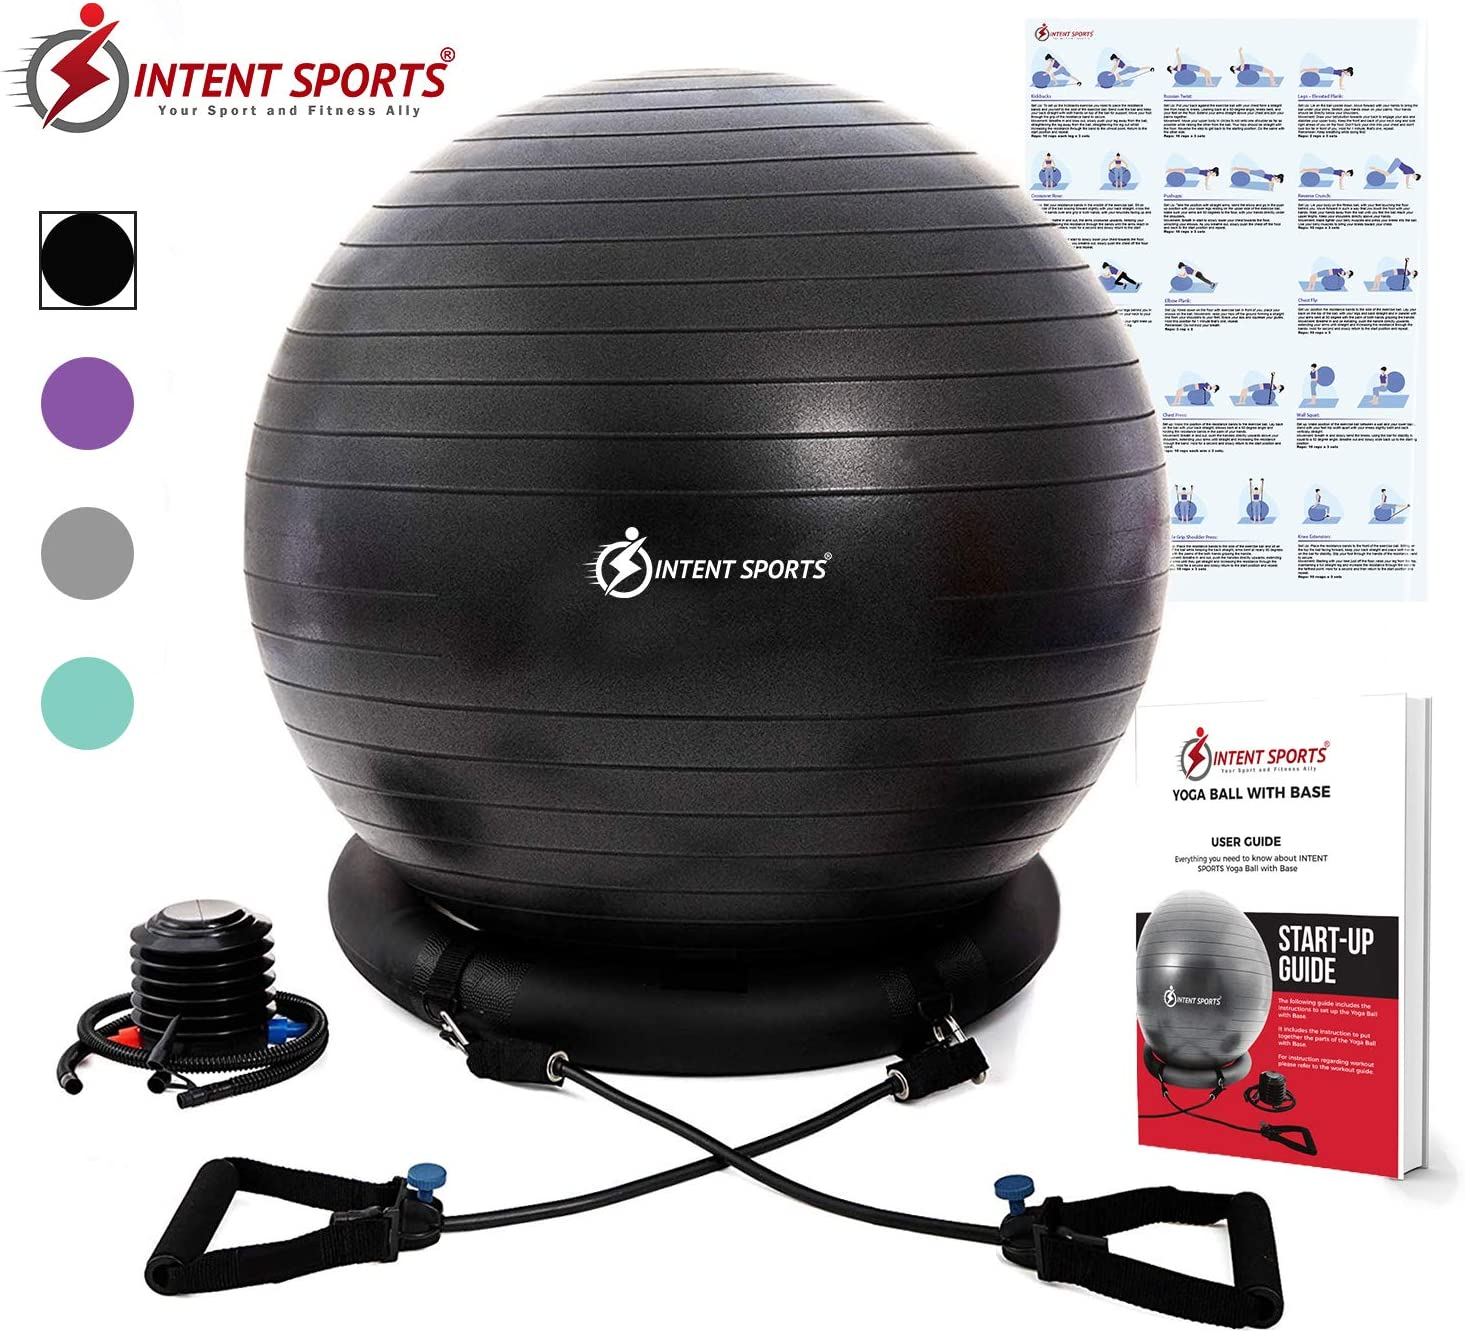 INTENT SPORTS Yoga Ball Chair – Stability Ball with Inflatable Stability Base & Resistance Bands, Fitness Ball for Home Gym, Office, Improves Back Pain, Core, Posture & Balance (65 cm)